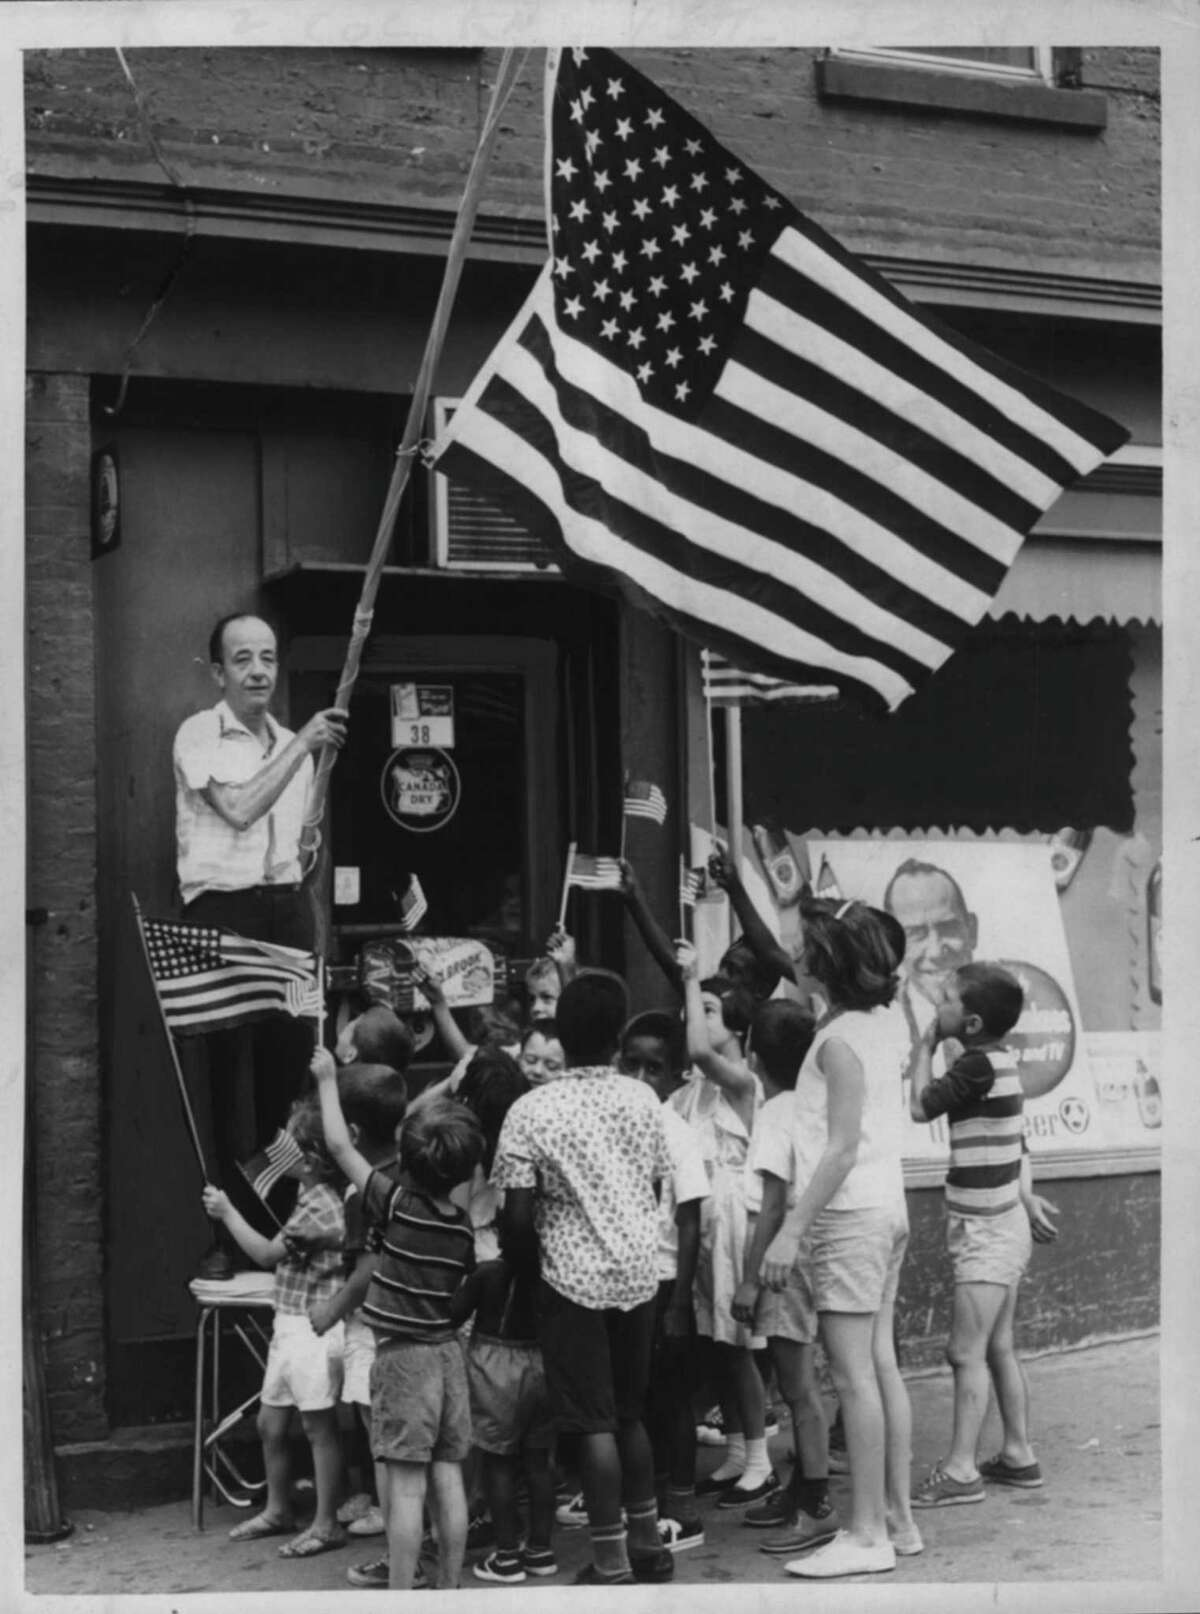 Albany, New York - Albany grocer Joseph Russo, a strong believer in displaying the colors on patriotic occasions, begins his July 4th weekend with some flag-waiving today in front of his store at 28 Park Avenue. Neighborhood children wave their own flags to join Mr. Russo's early celebration of Independence Day. July 03, 1964 (Knickerbocker News Staff Photo/Times Union Archive)